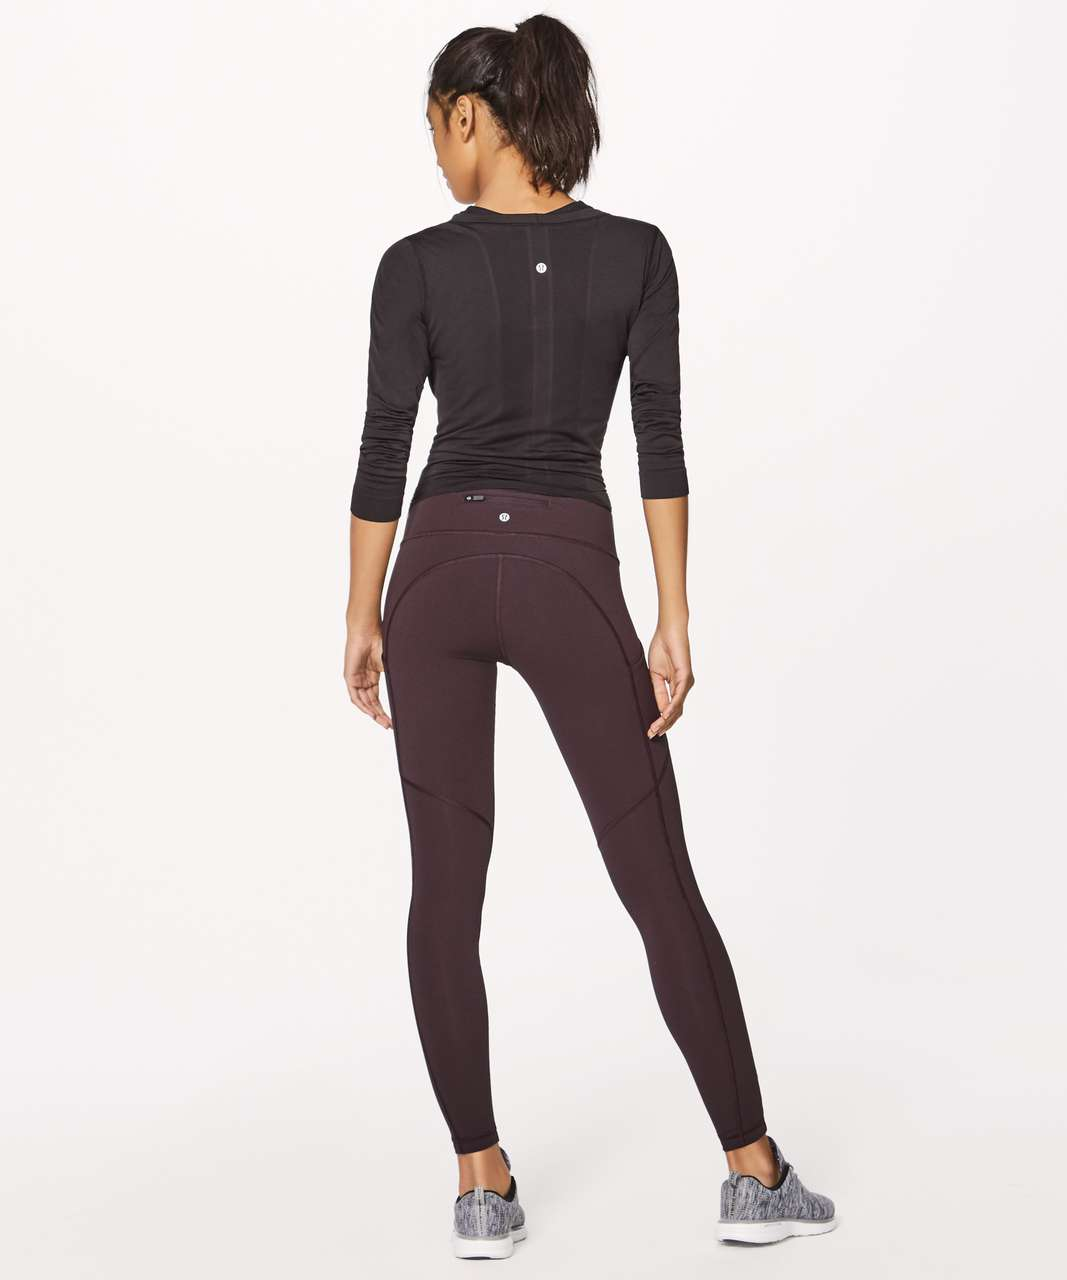 "Lululemon Speed Tight V (29"") - Pelt"